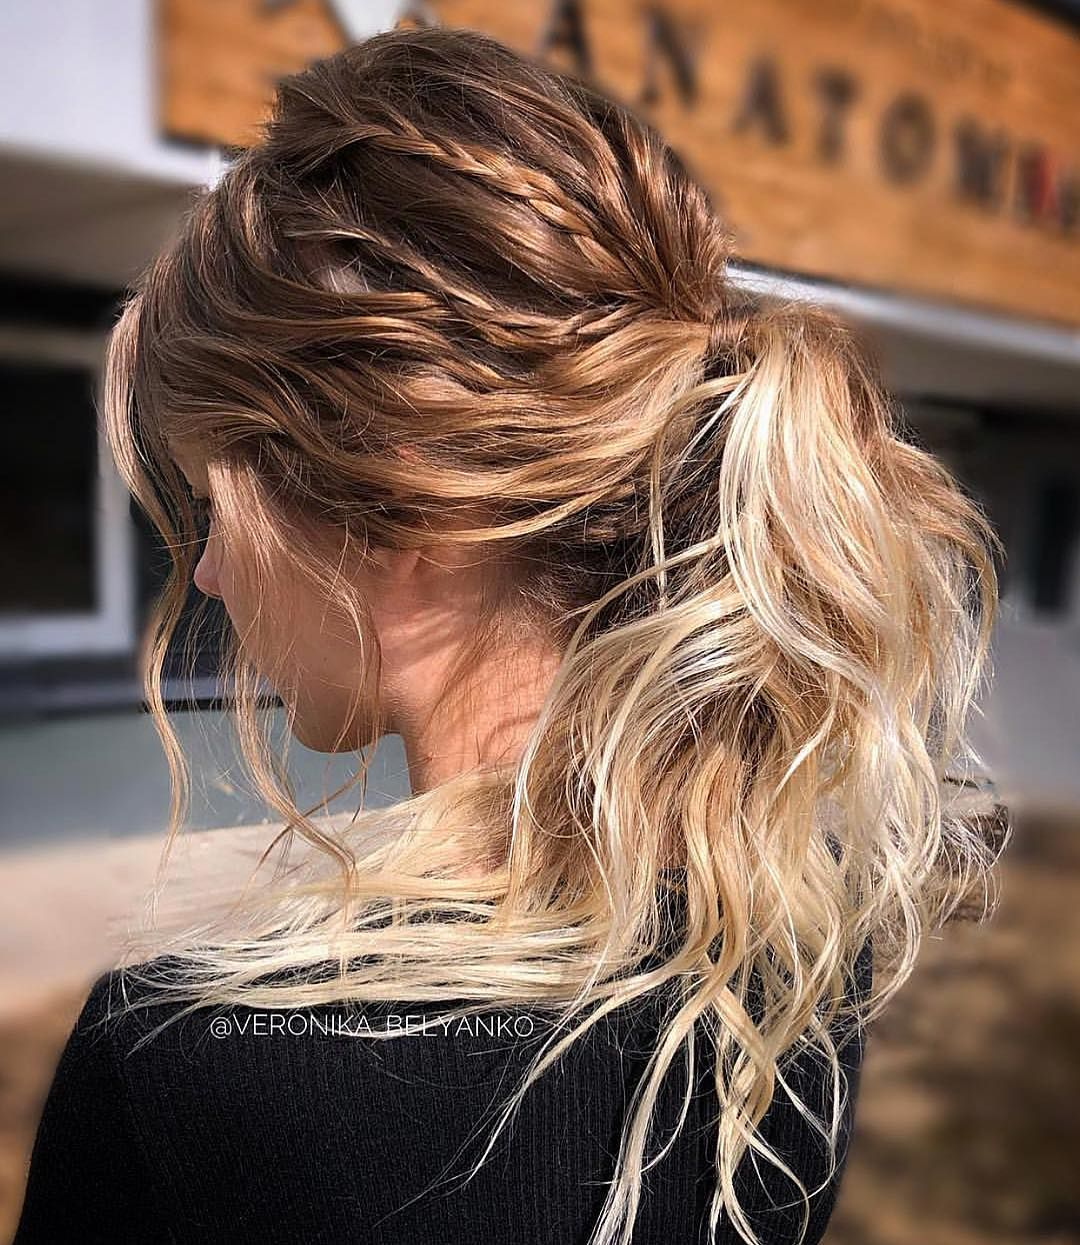 34 Beautiful Hairstyle Inspiration For any occasion ,wedding hairstyle ,updo ,wedding hairdo ,braids ,braid hairstyle ideas ,ponytail,braided updo #hairstyle #hair